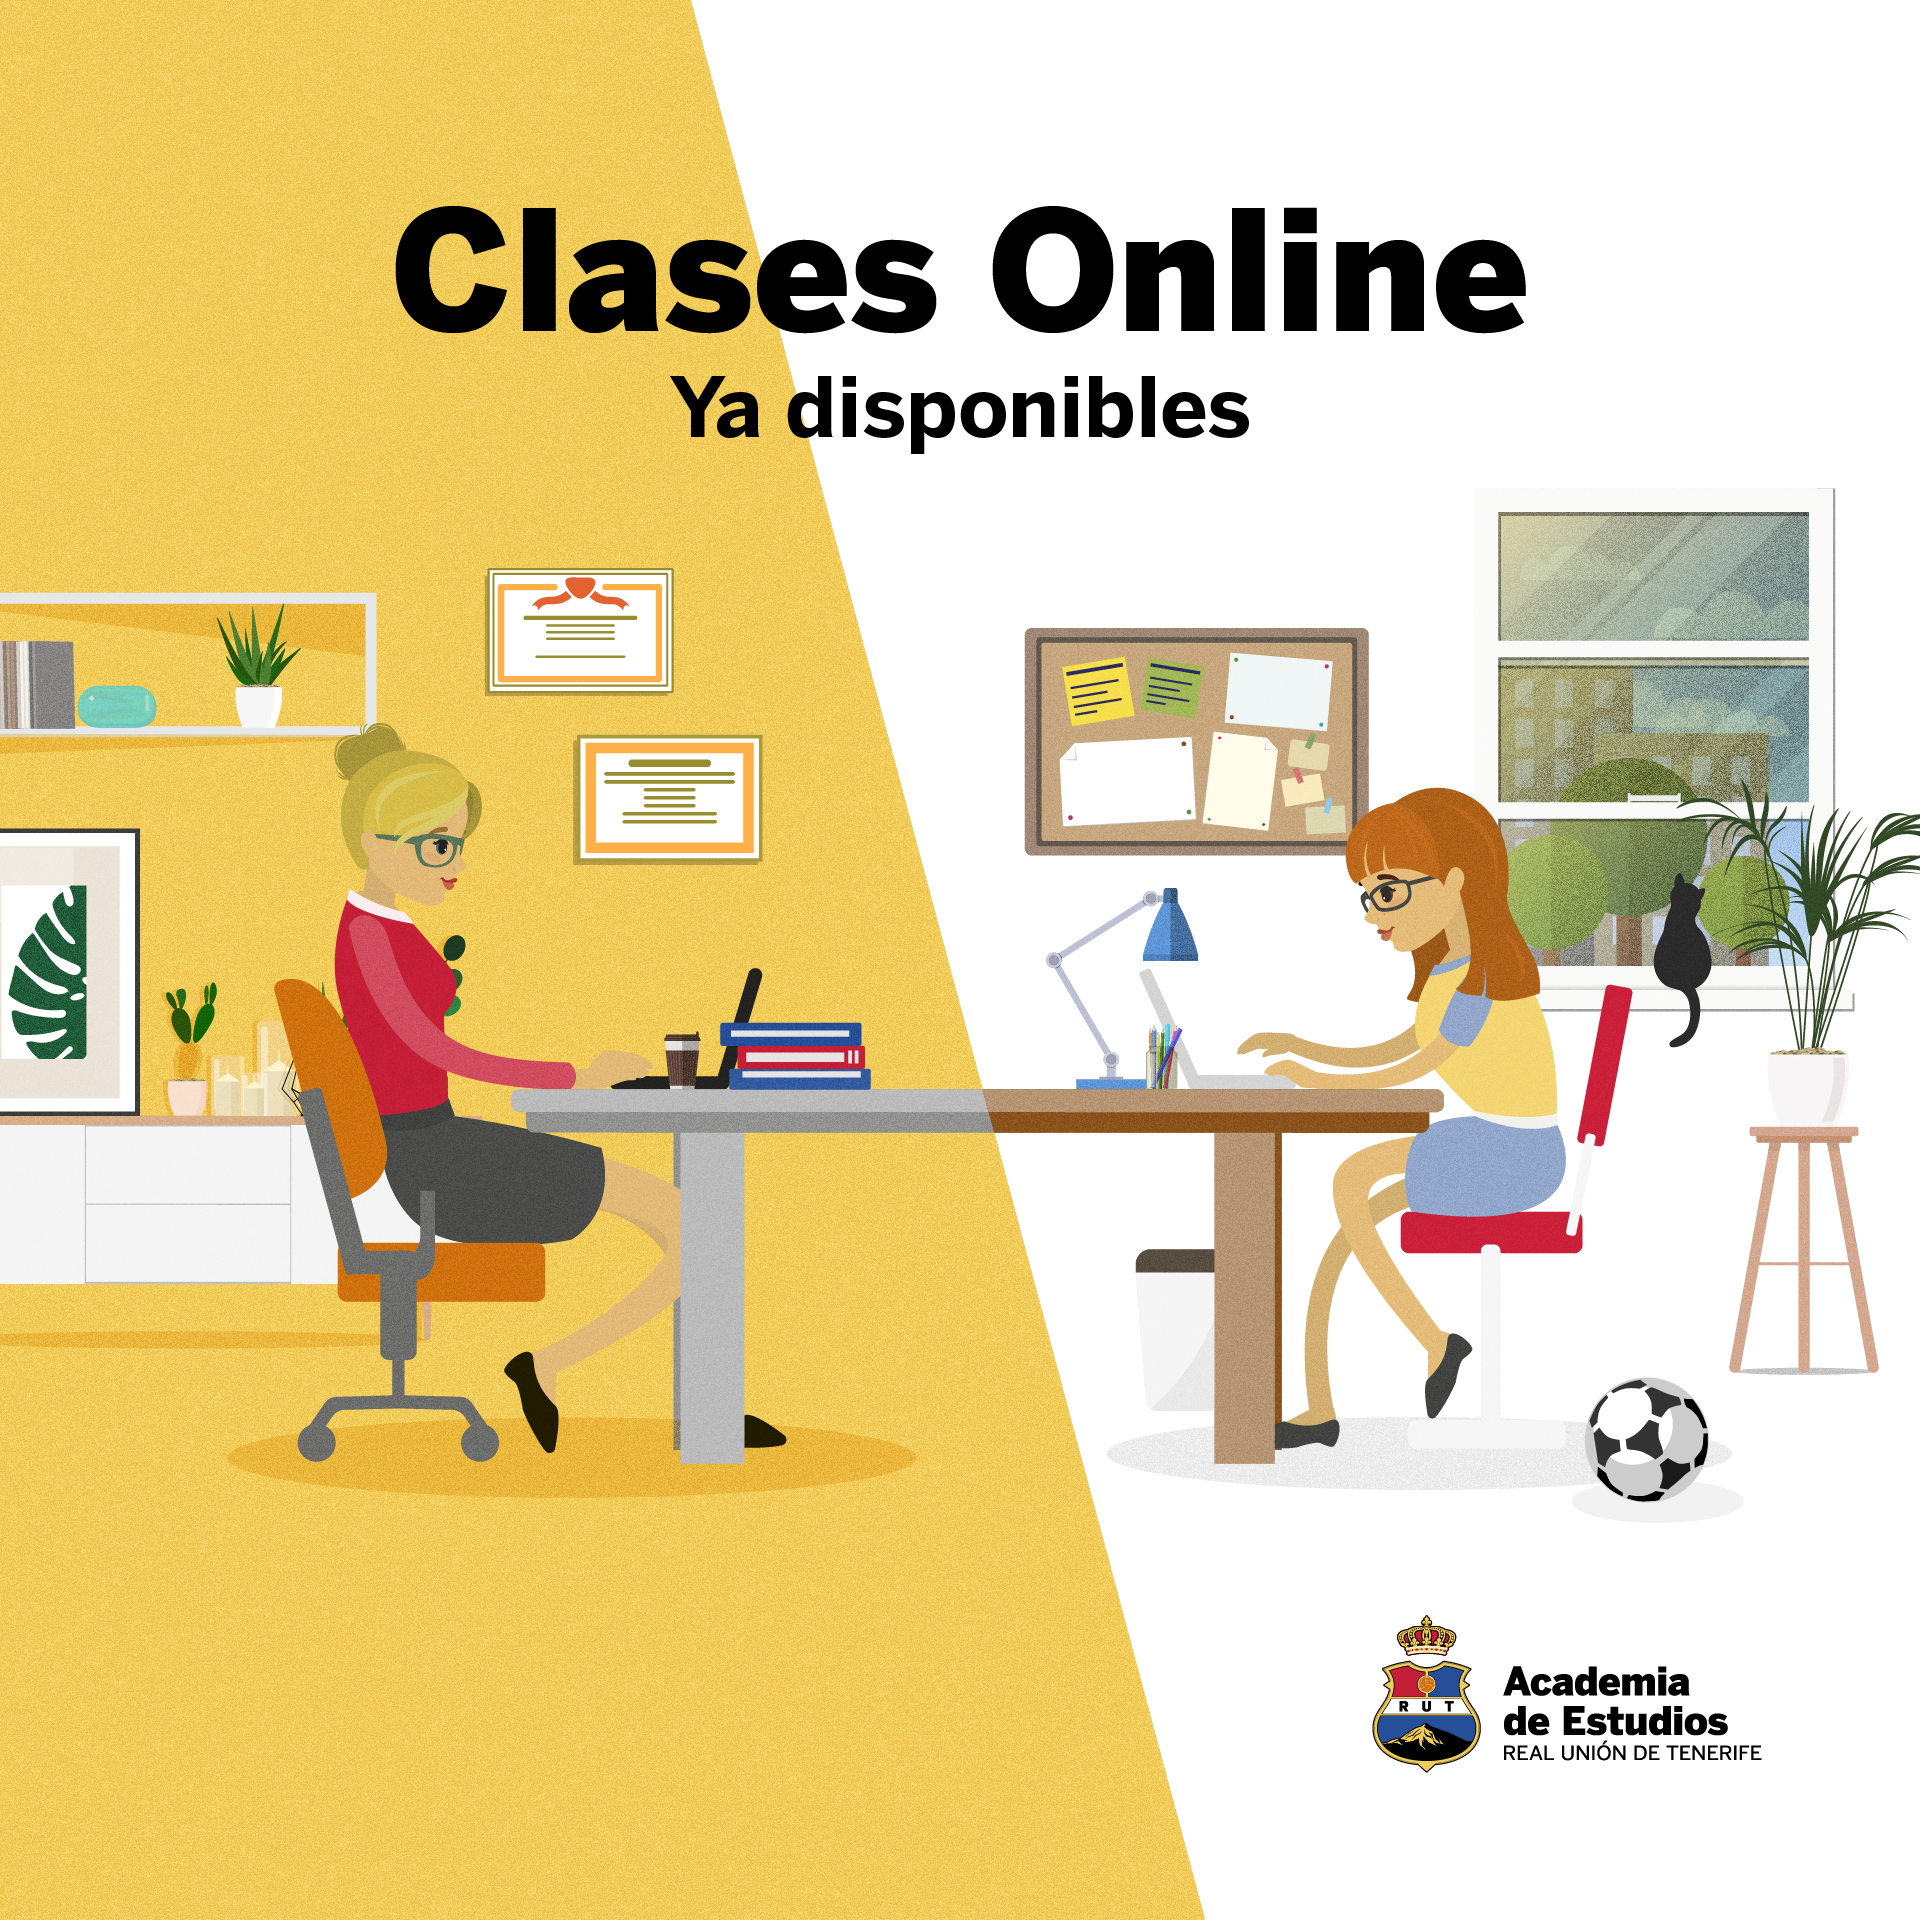 rut_academia-clases_online_F--1080-1.png